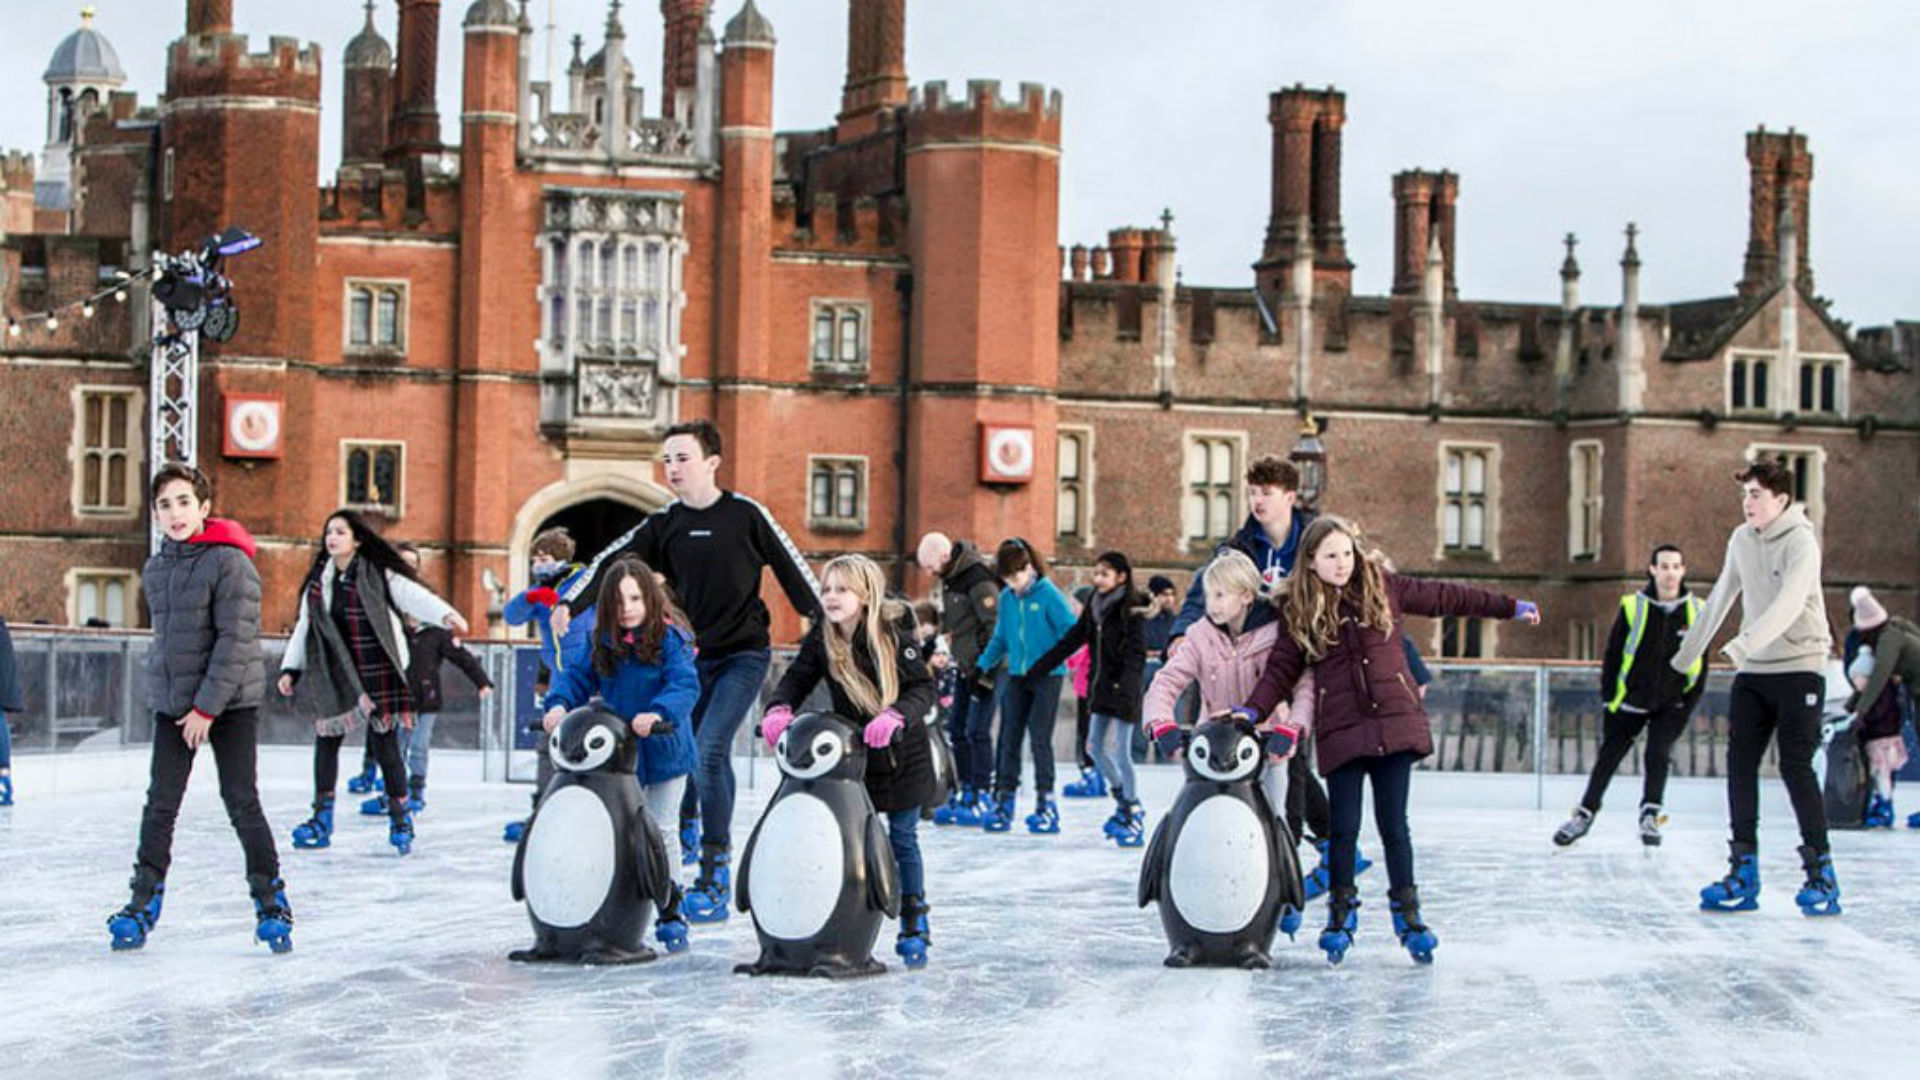 A photo of families skating at the Hampton Court Palace Ice Rink, with the palace in the background.